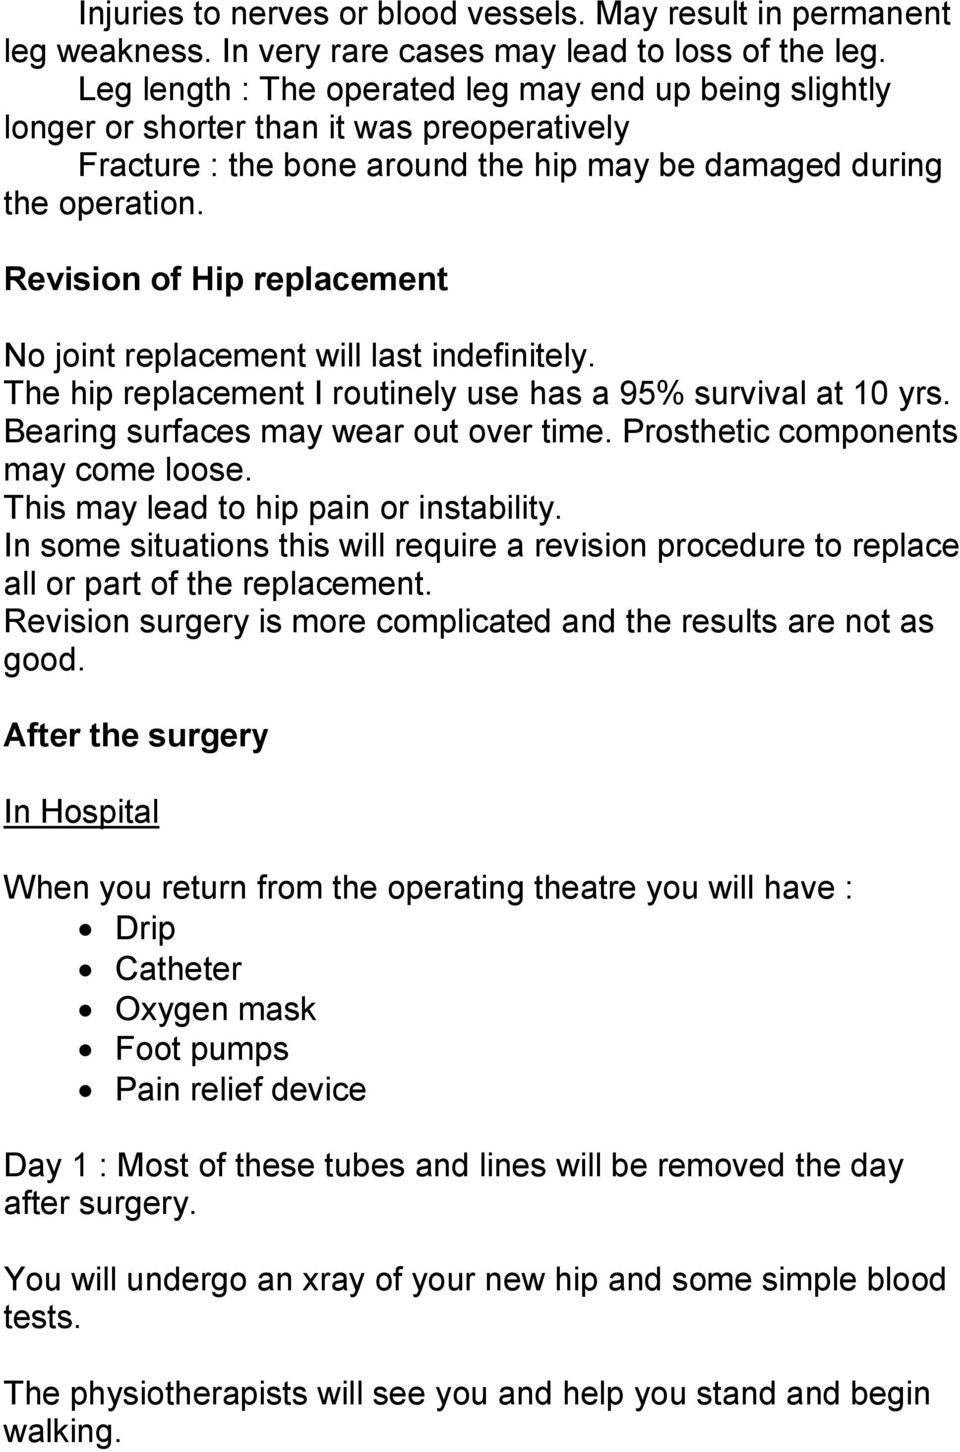 Revision of Hip replacement No joint replacement will last indefinitely. The hip replacement I routinely use has a 95% survival at 10 yrs. Bearing surfaces may wear out over time.